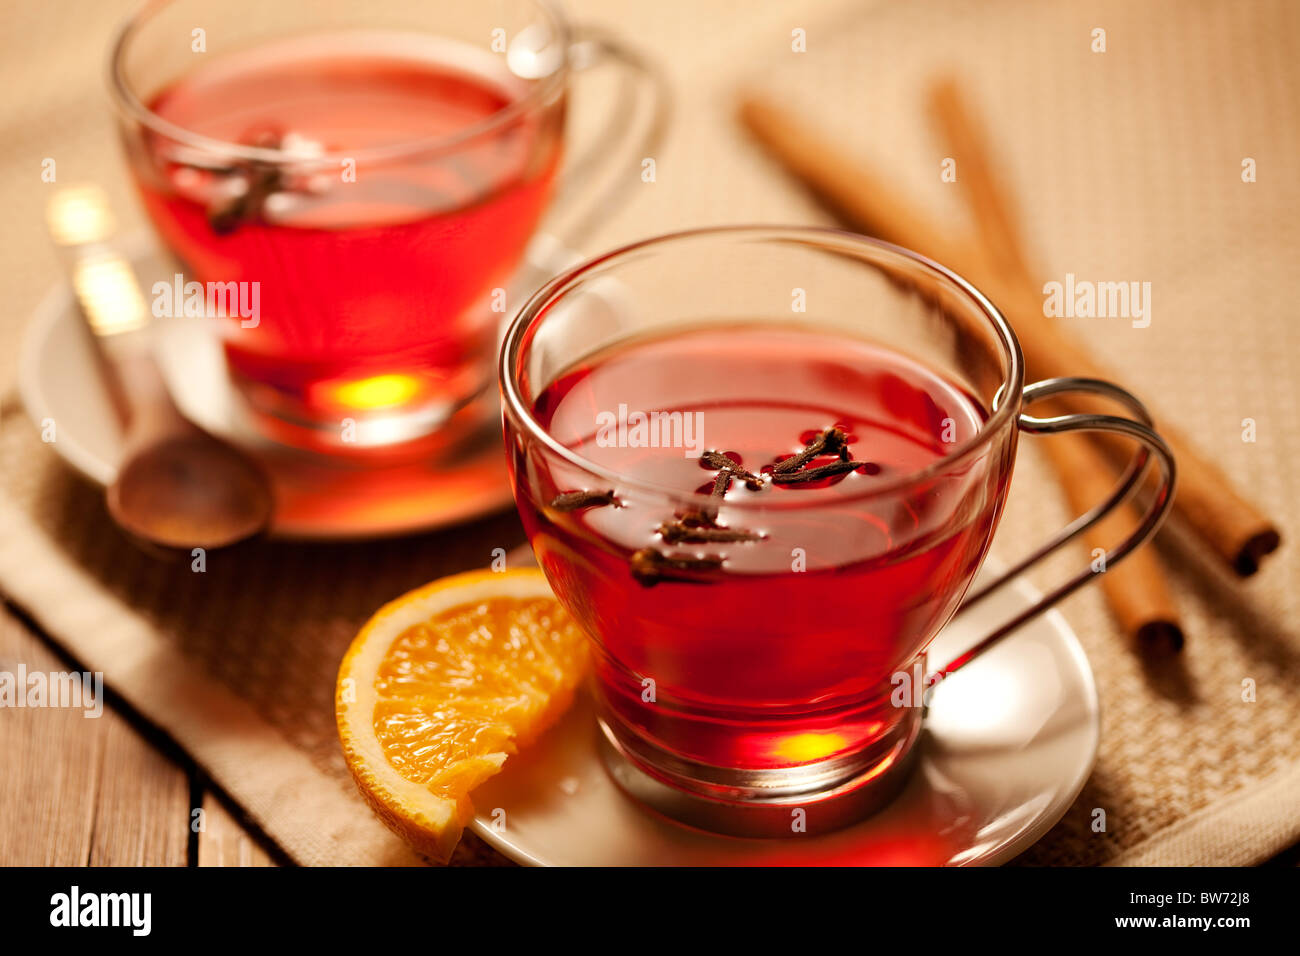 hot toddy - Stock Image